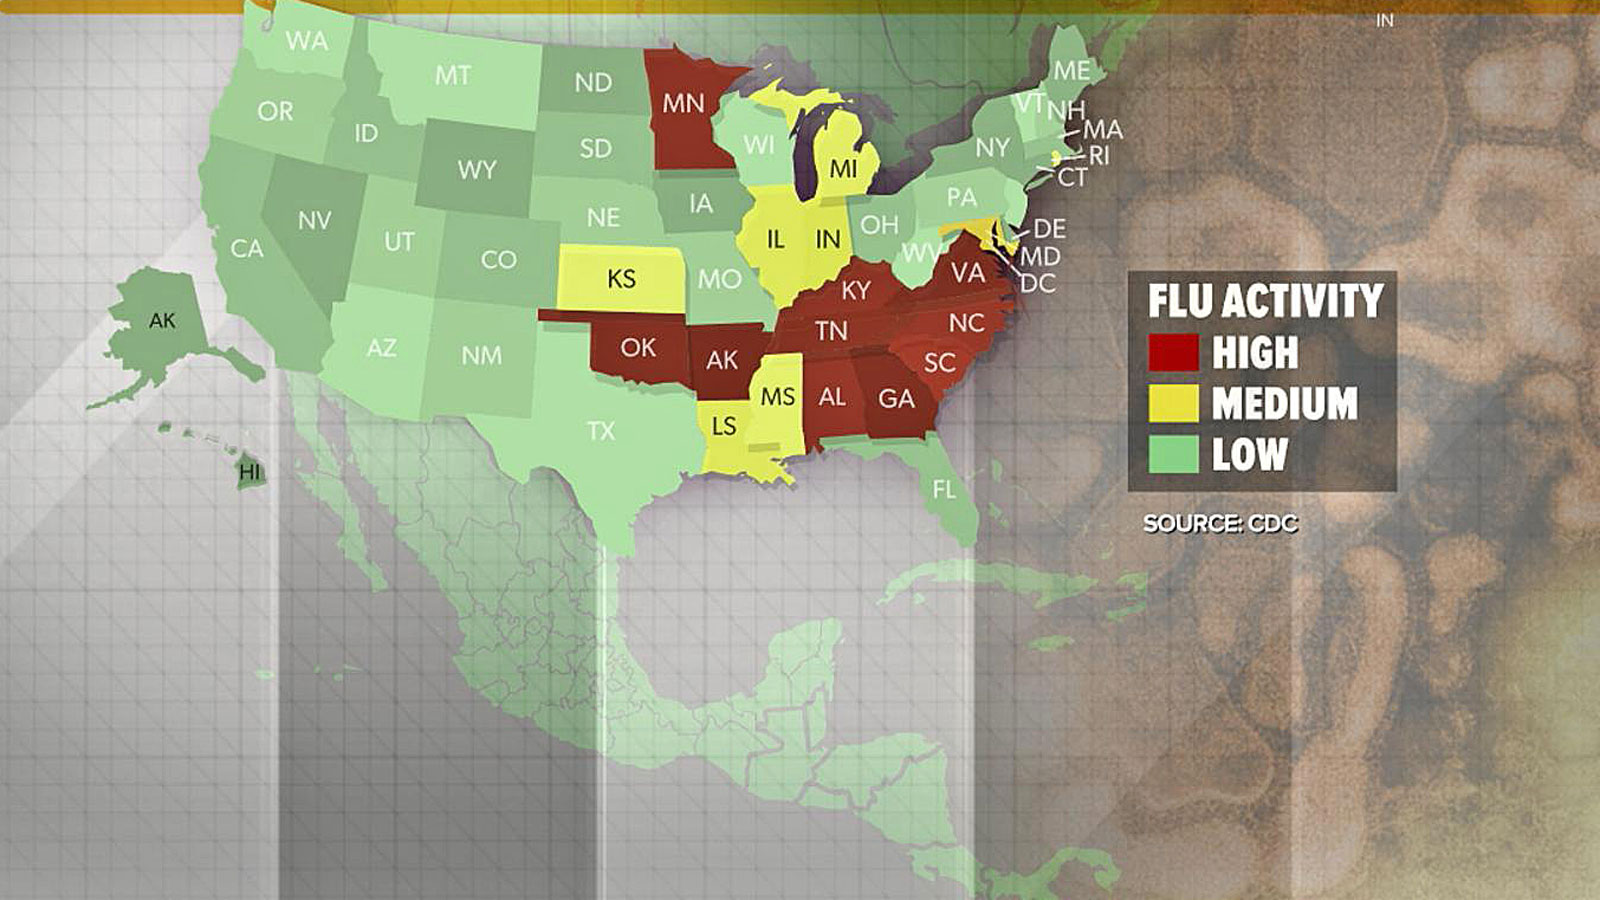 Flu Videos at ABC News Video Archive at abcnewscom